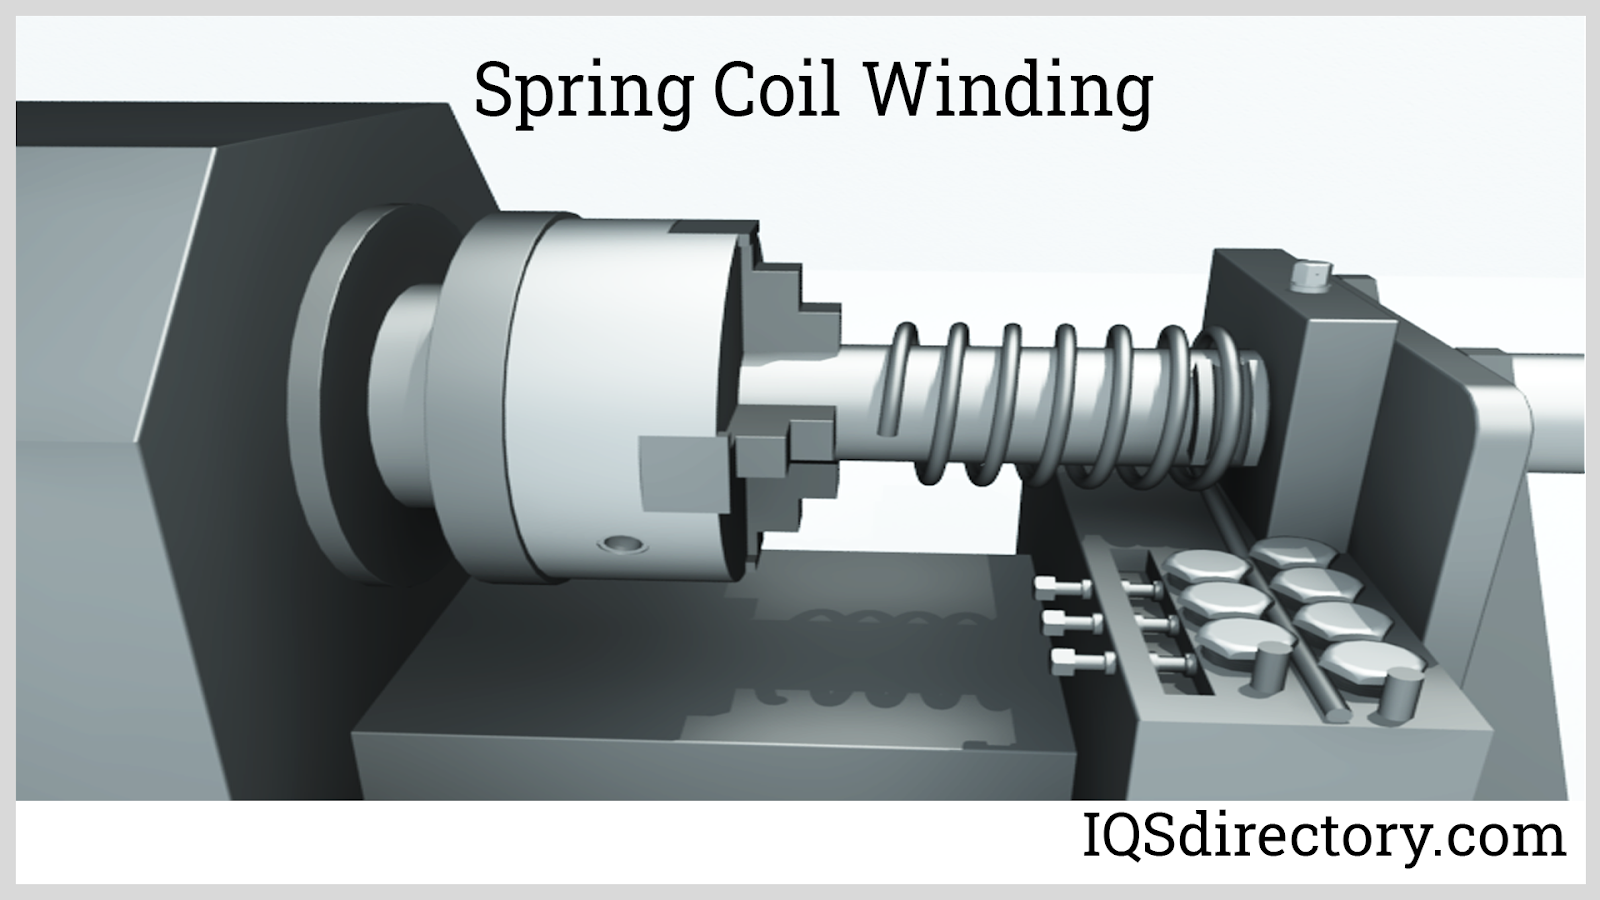 Spring Coil Winding